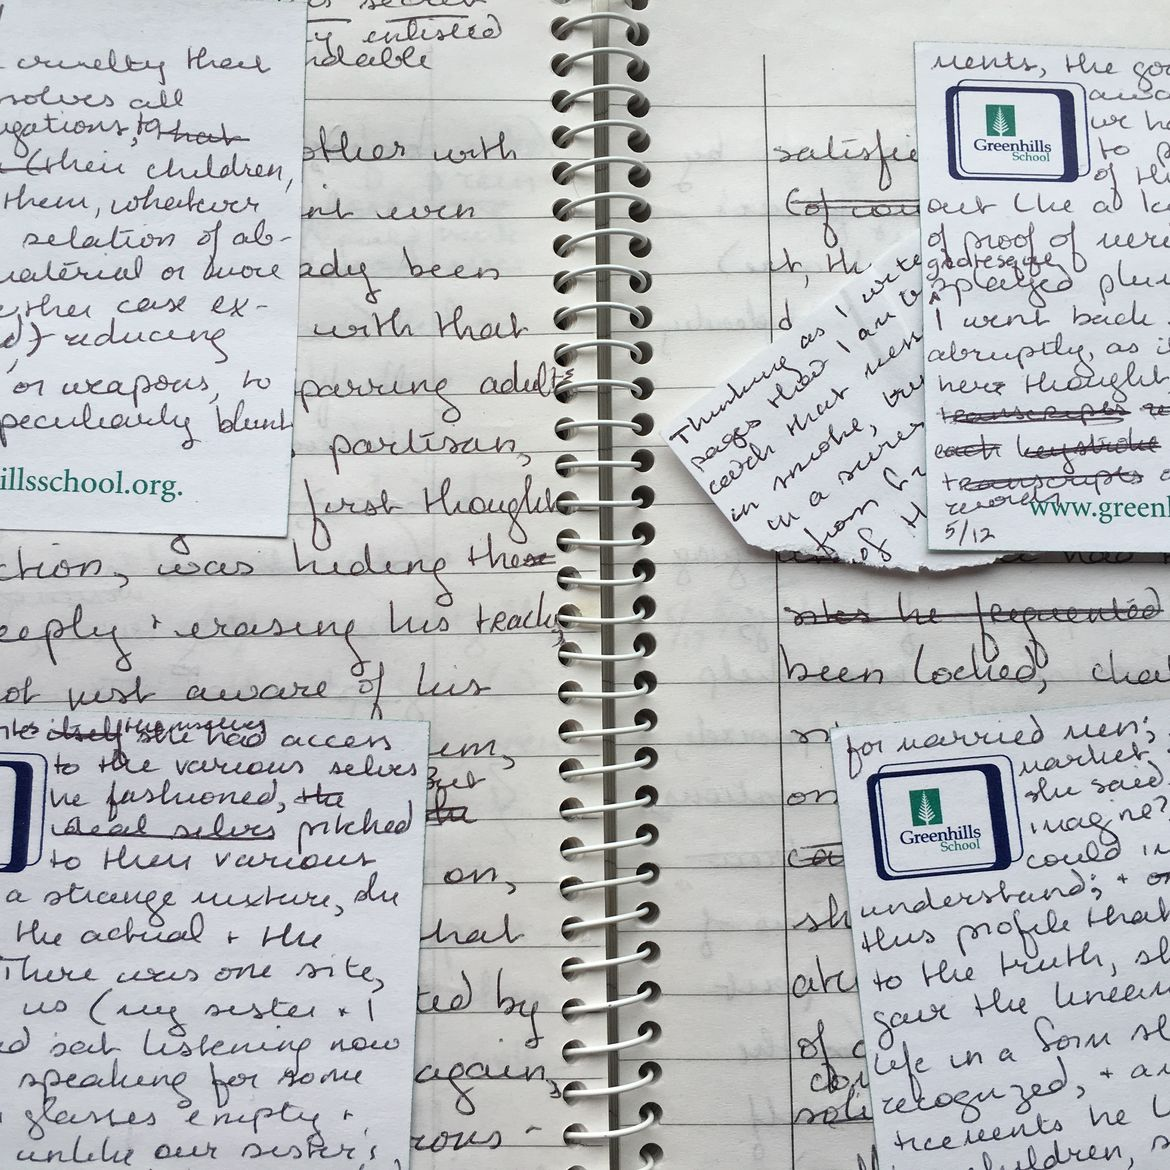 Cover Photo: Garth Greenwell's notebooks